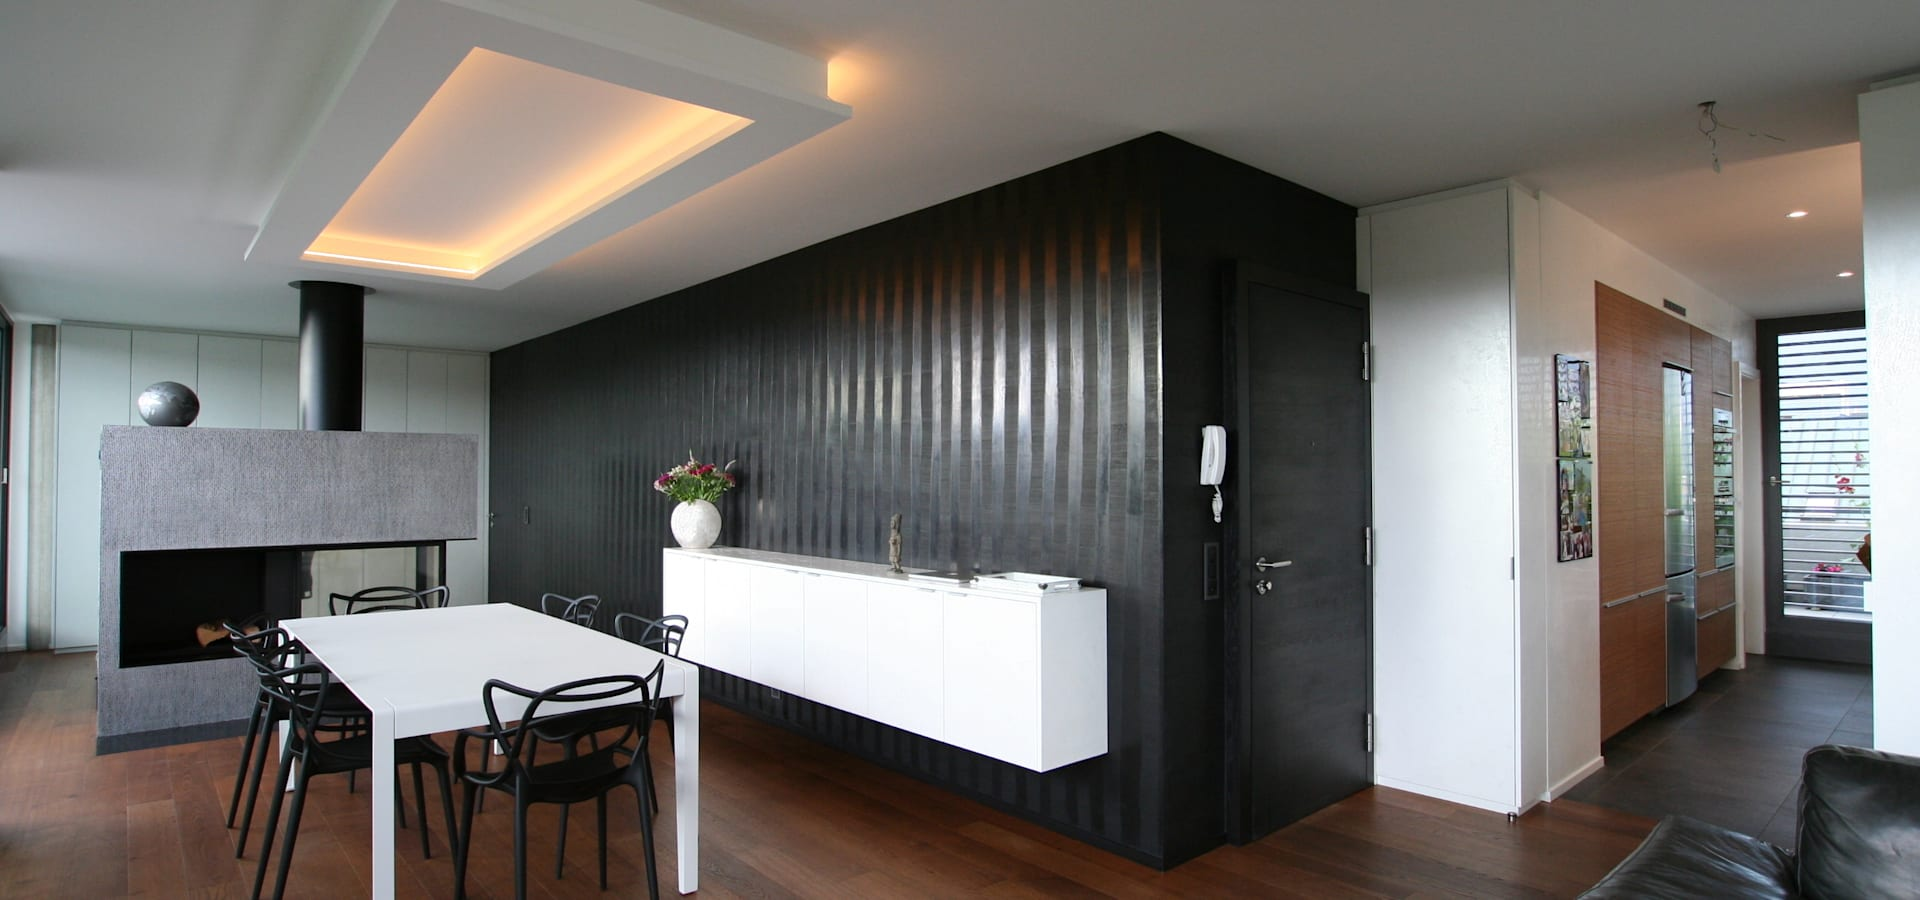 agencement d 39 un appartement carouge profesjonalista sylvia junge architecte homify. Black Bedroom Furniture Sets. Home Design Ideas